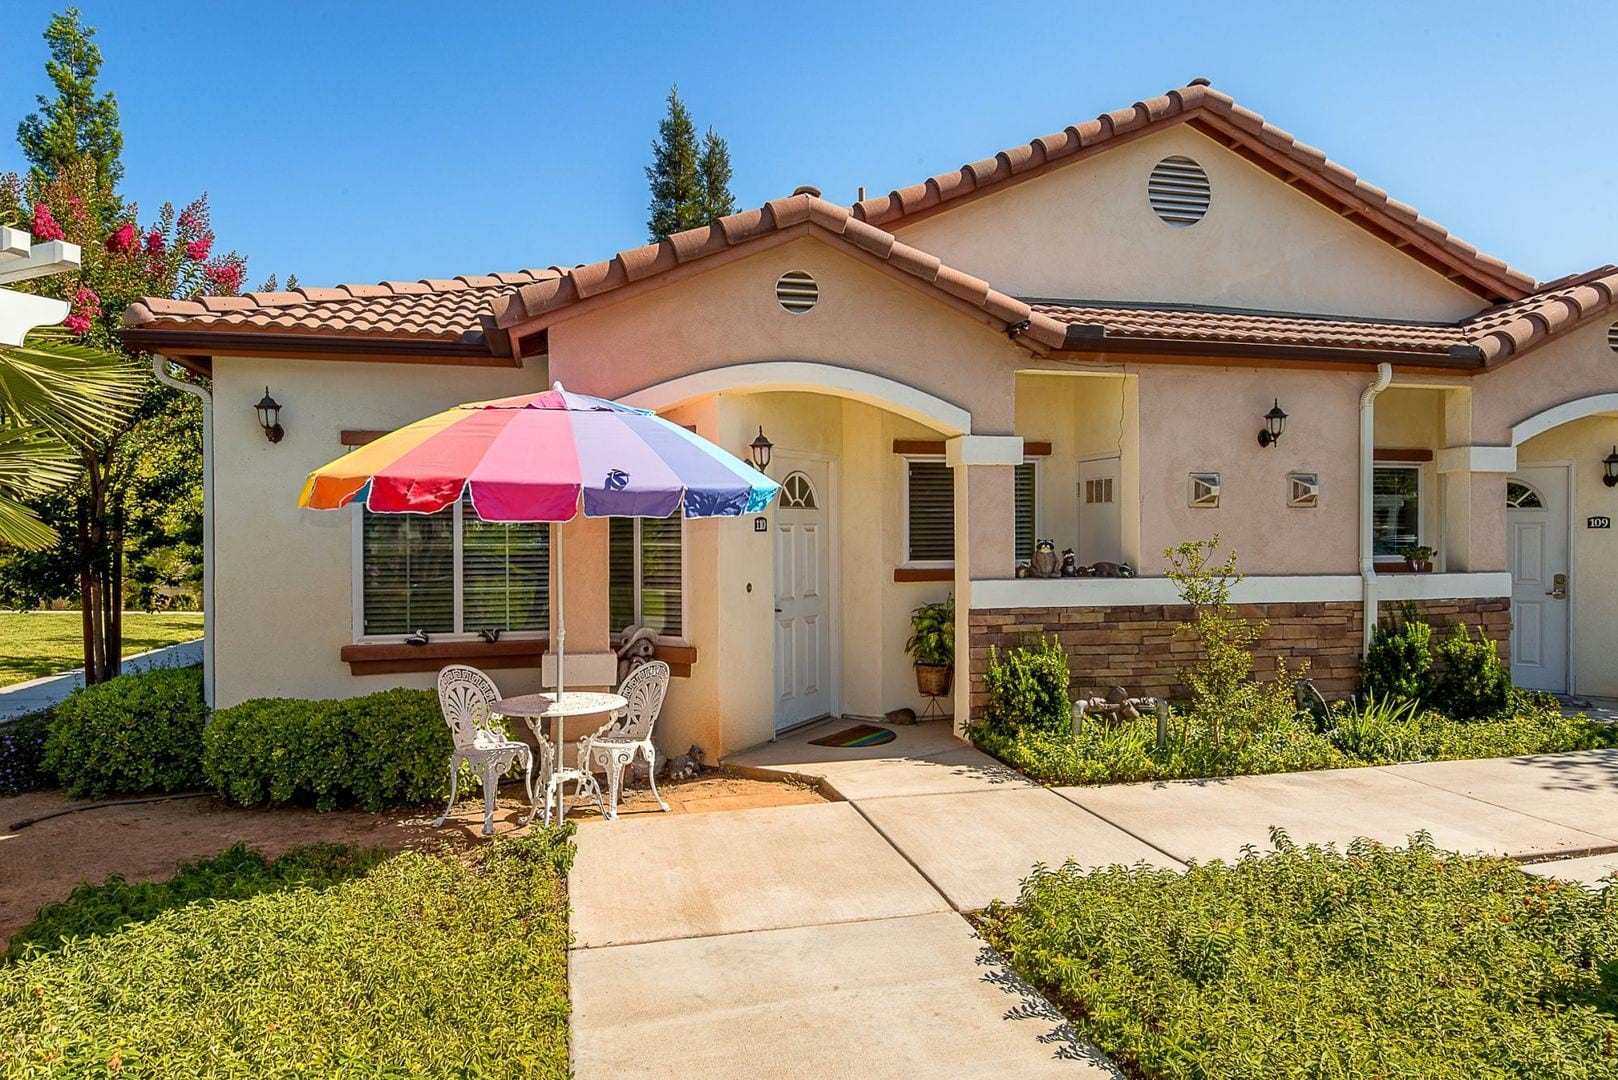 Westwood Bluffs Photo Gallery | Fresno, CA Apartment Pictures